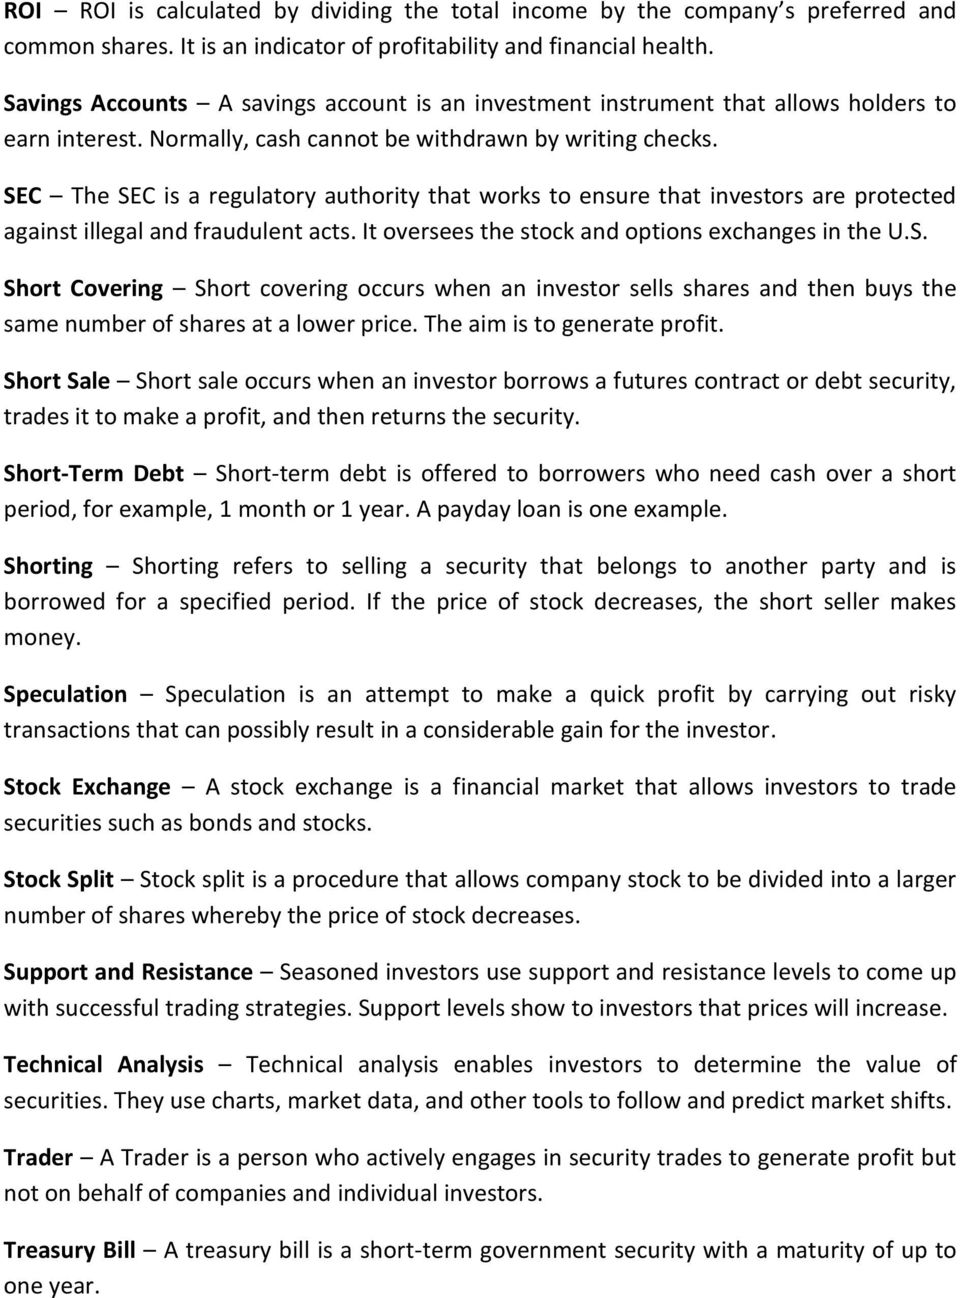 SEC The SEC is a regulatory authority that works to ensure that investors are protected against illegal and fraudulent acts. It oversees the stock and options exchanges in the U.S. Short Covering Short covering occurs when an investor sells shares and then buys the same number of shares at a lower price.